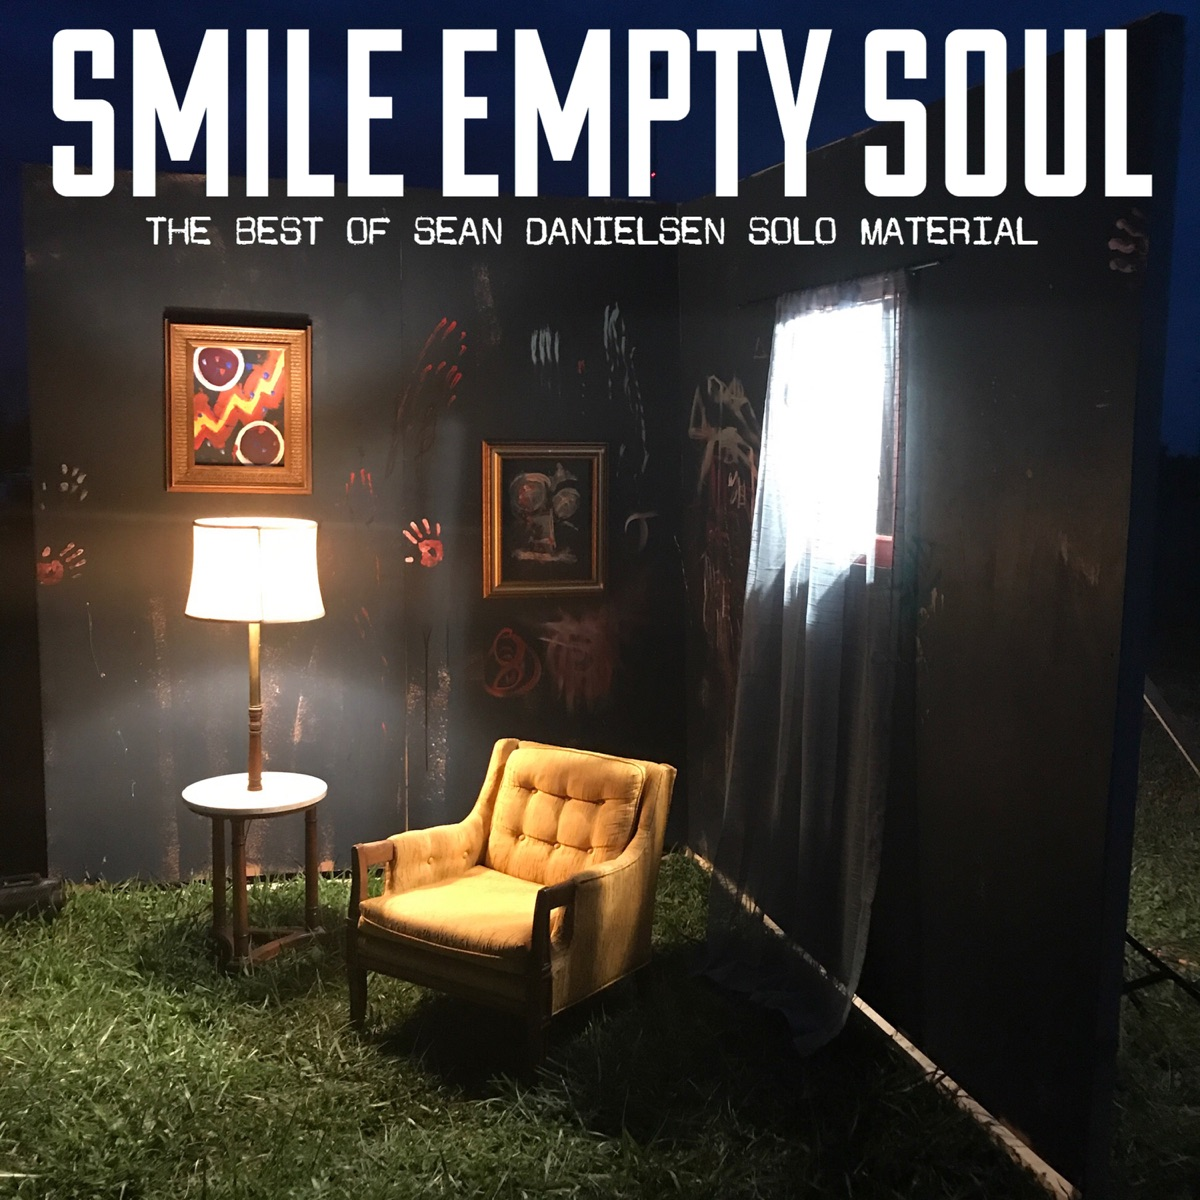 The Best of Sean Danielsen Solo Material Album Cover by Smile Empty Soul